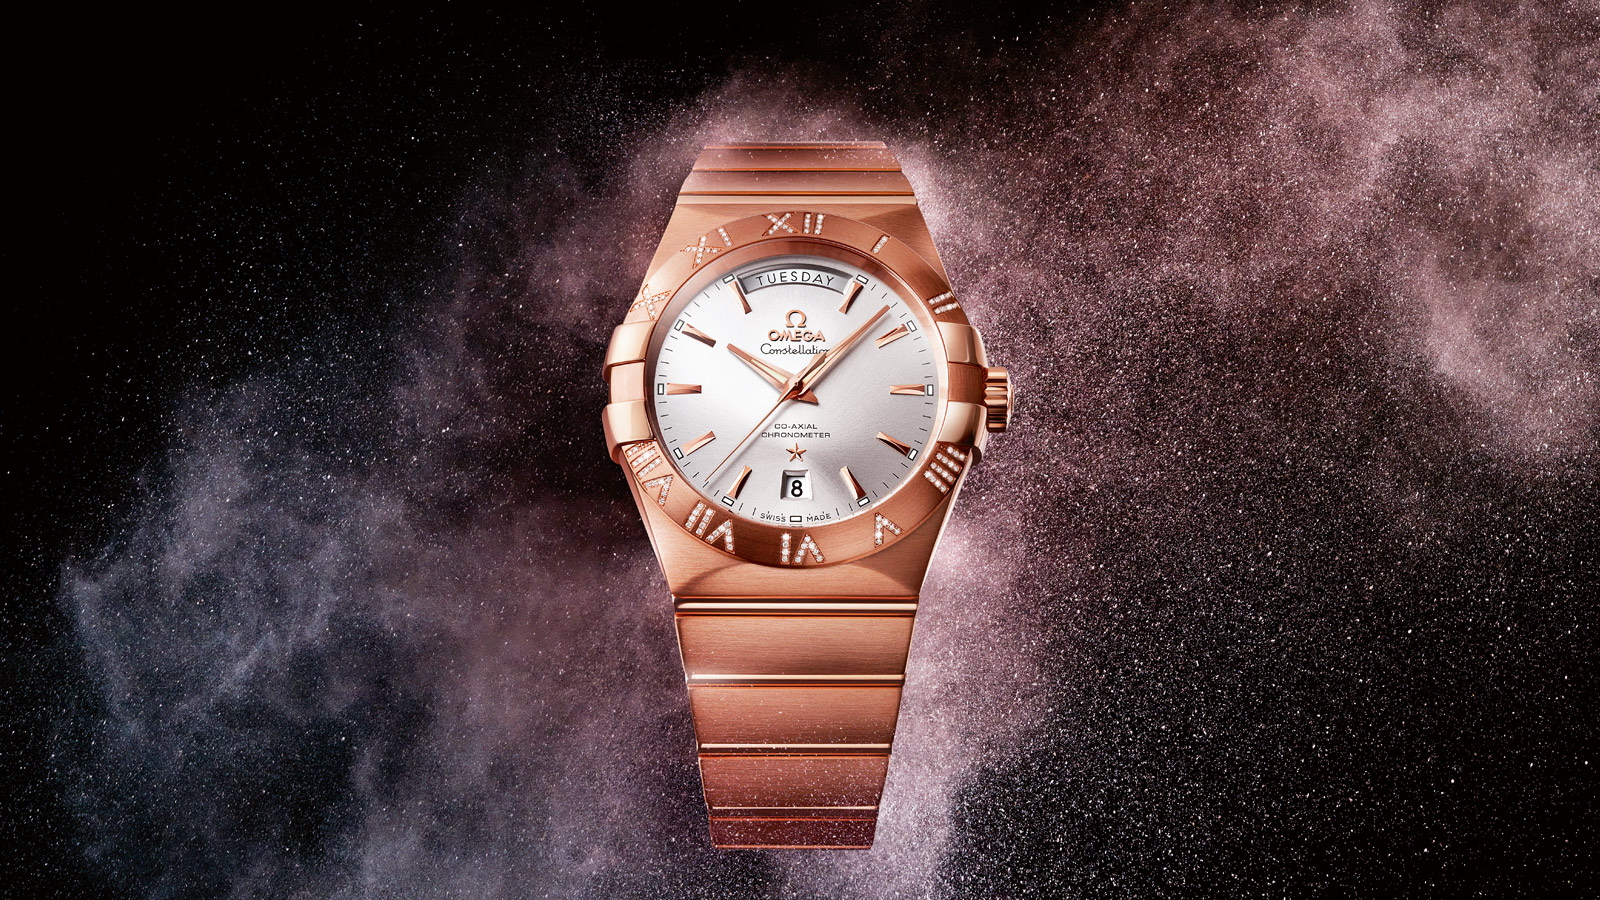 Constellation コンステレーション Constellation Omega Co‑Axial Day‑Date 38mm - 123.55.38.22.02.001 - ビュー 2